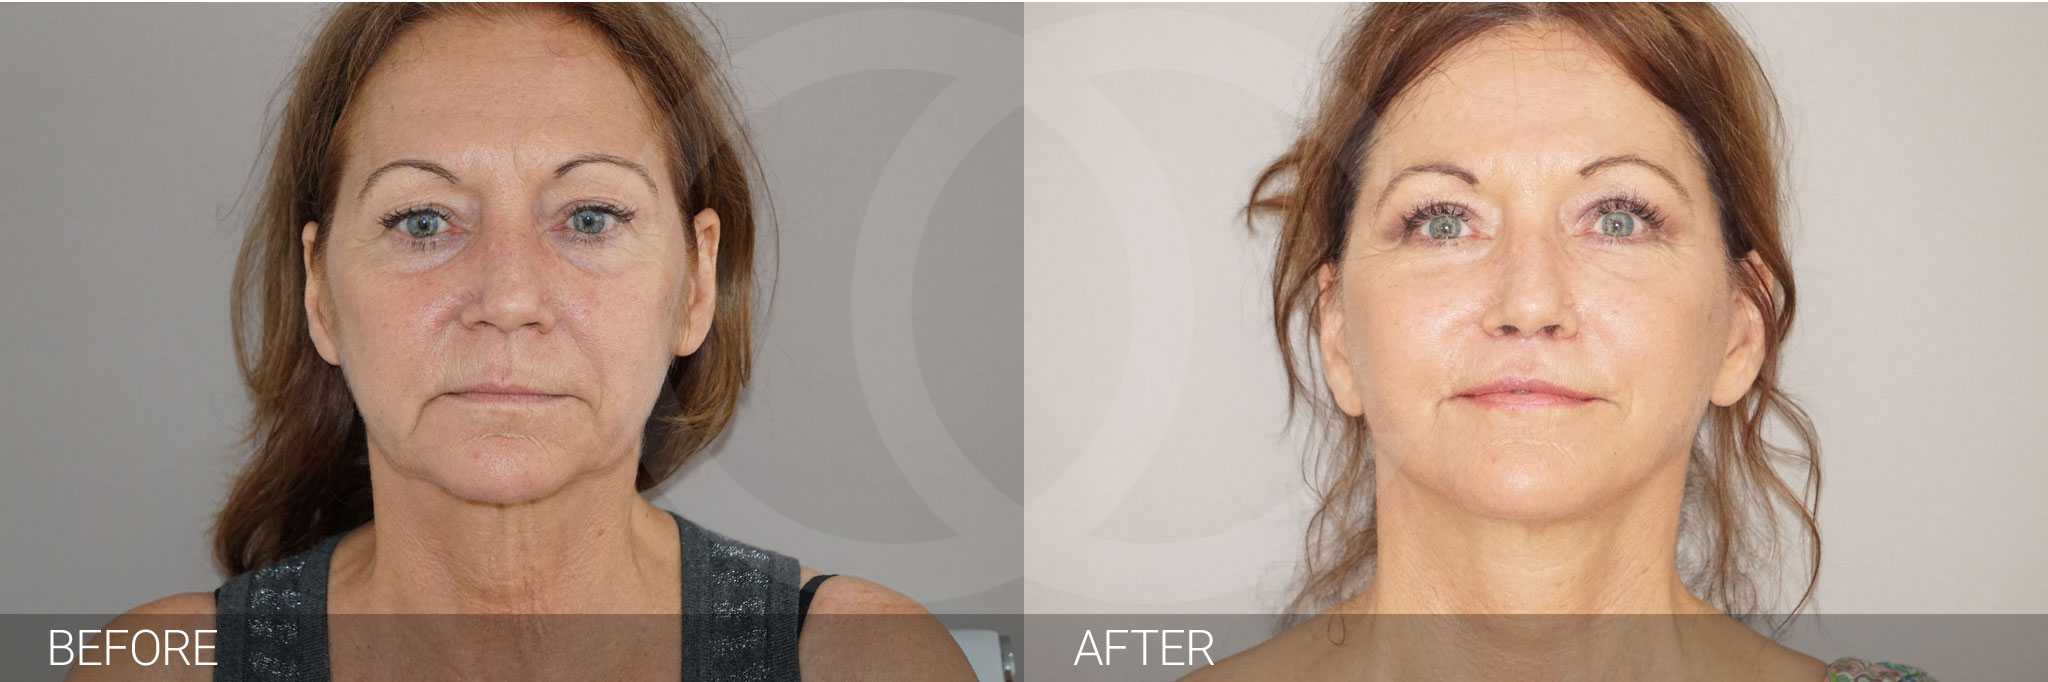 Facial rejuvenation with fat grafting.